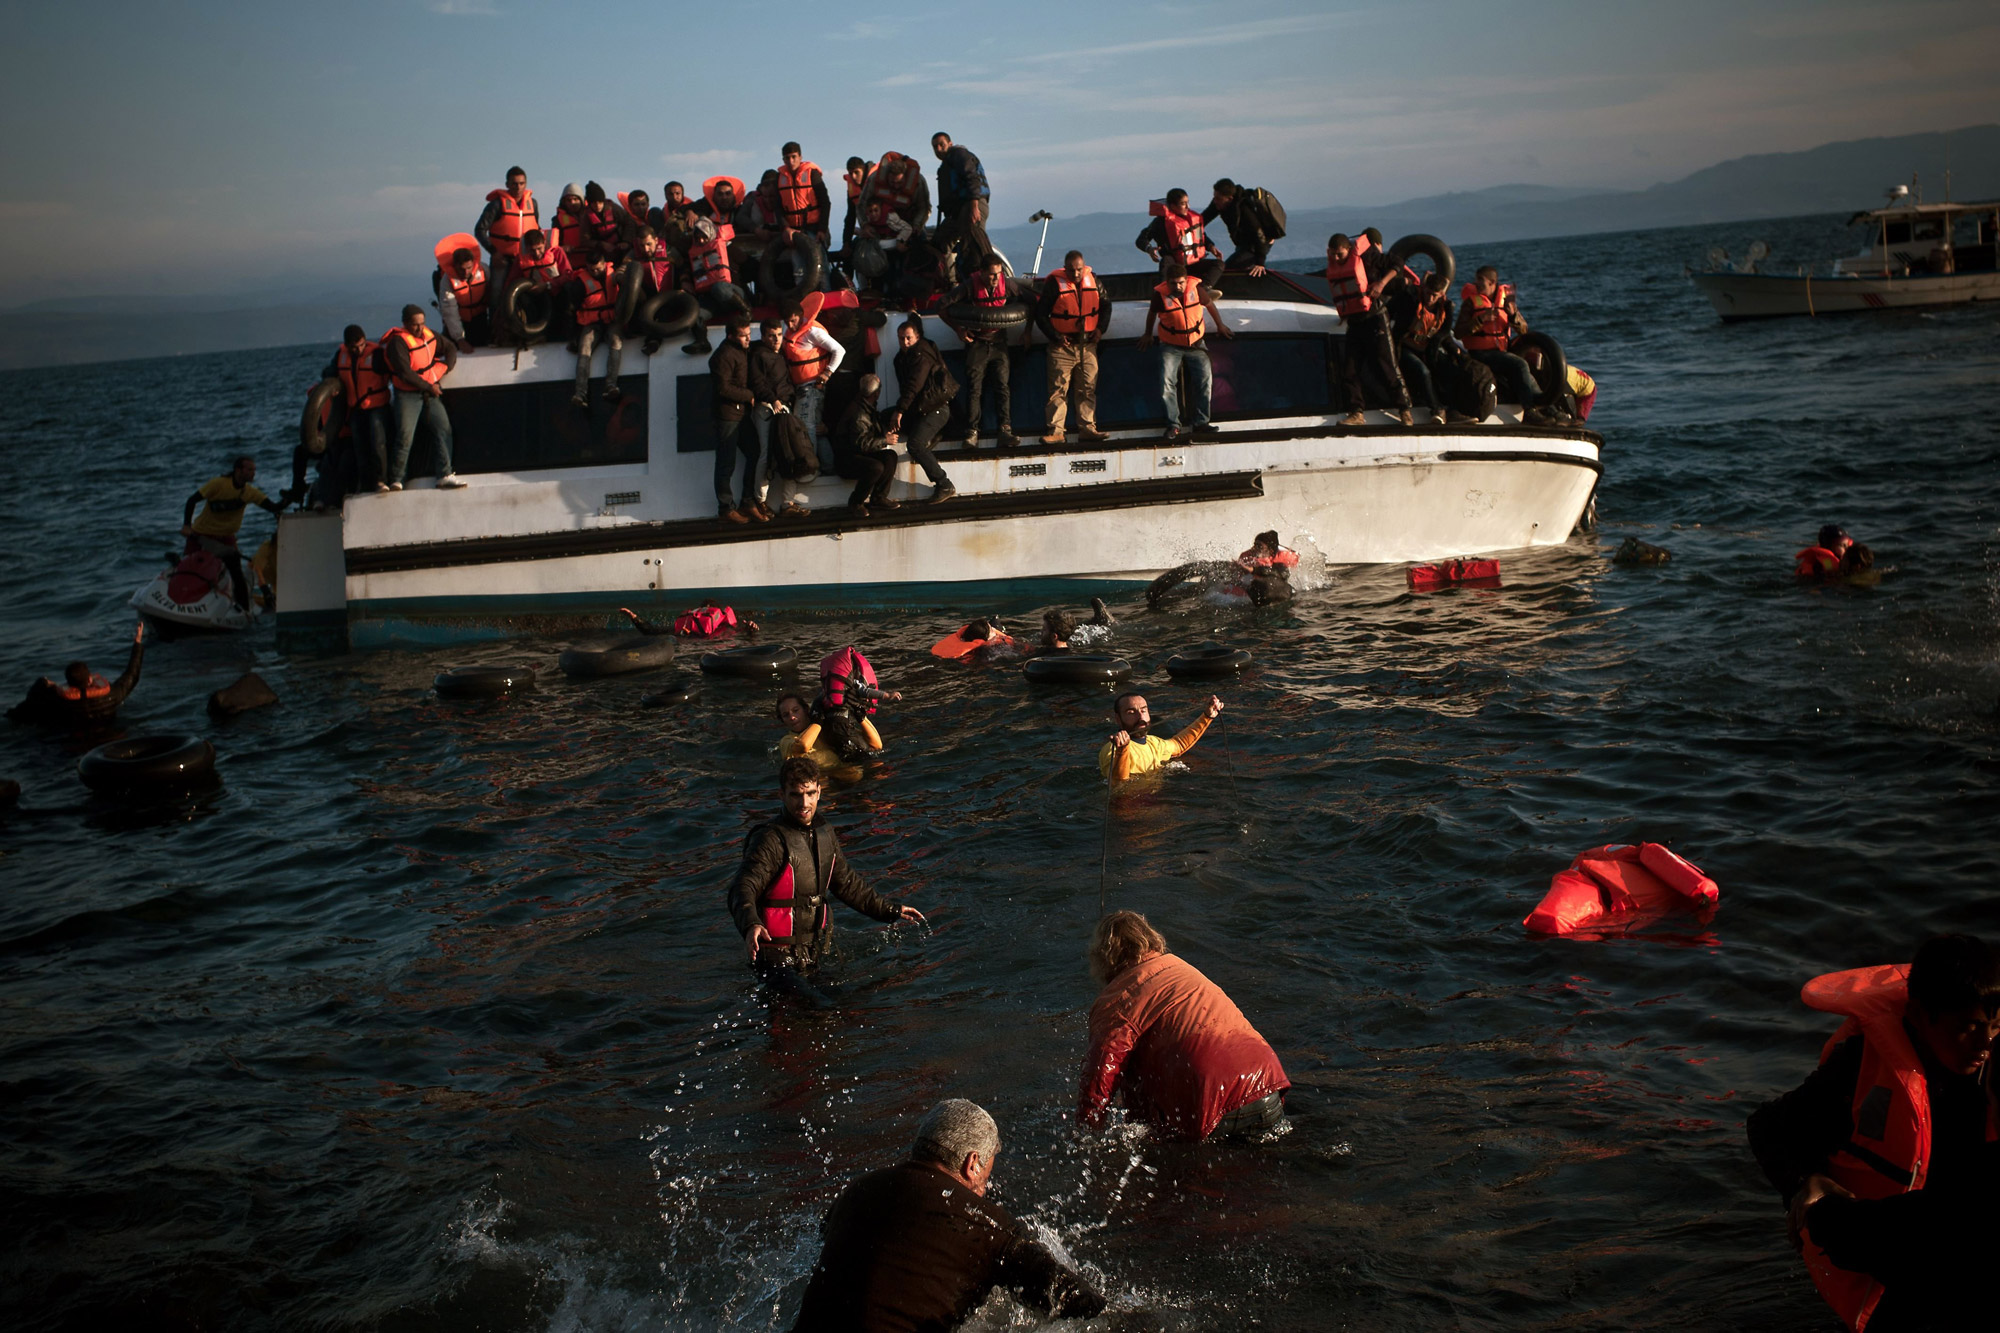 Refugees and migrants react as their boat sinks off the Greek island of Lesbos on Oct. 30, 2015.